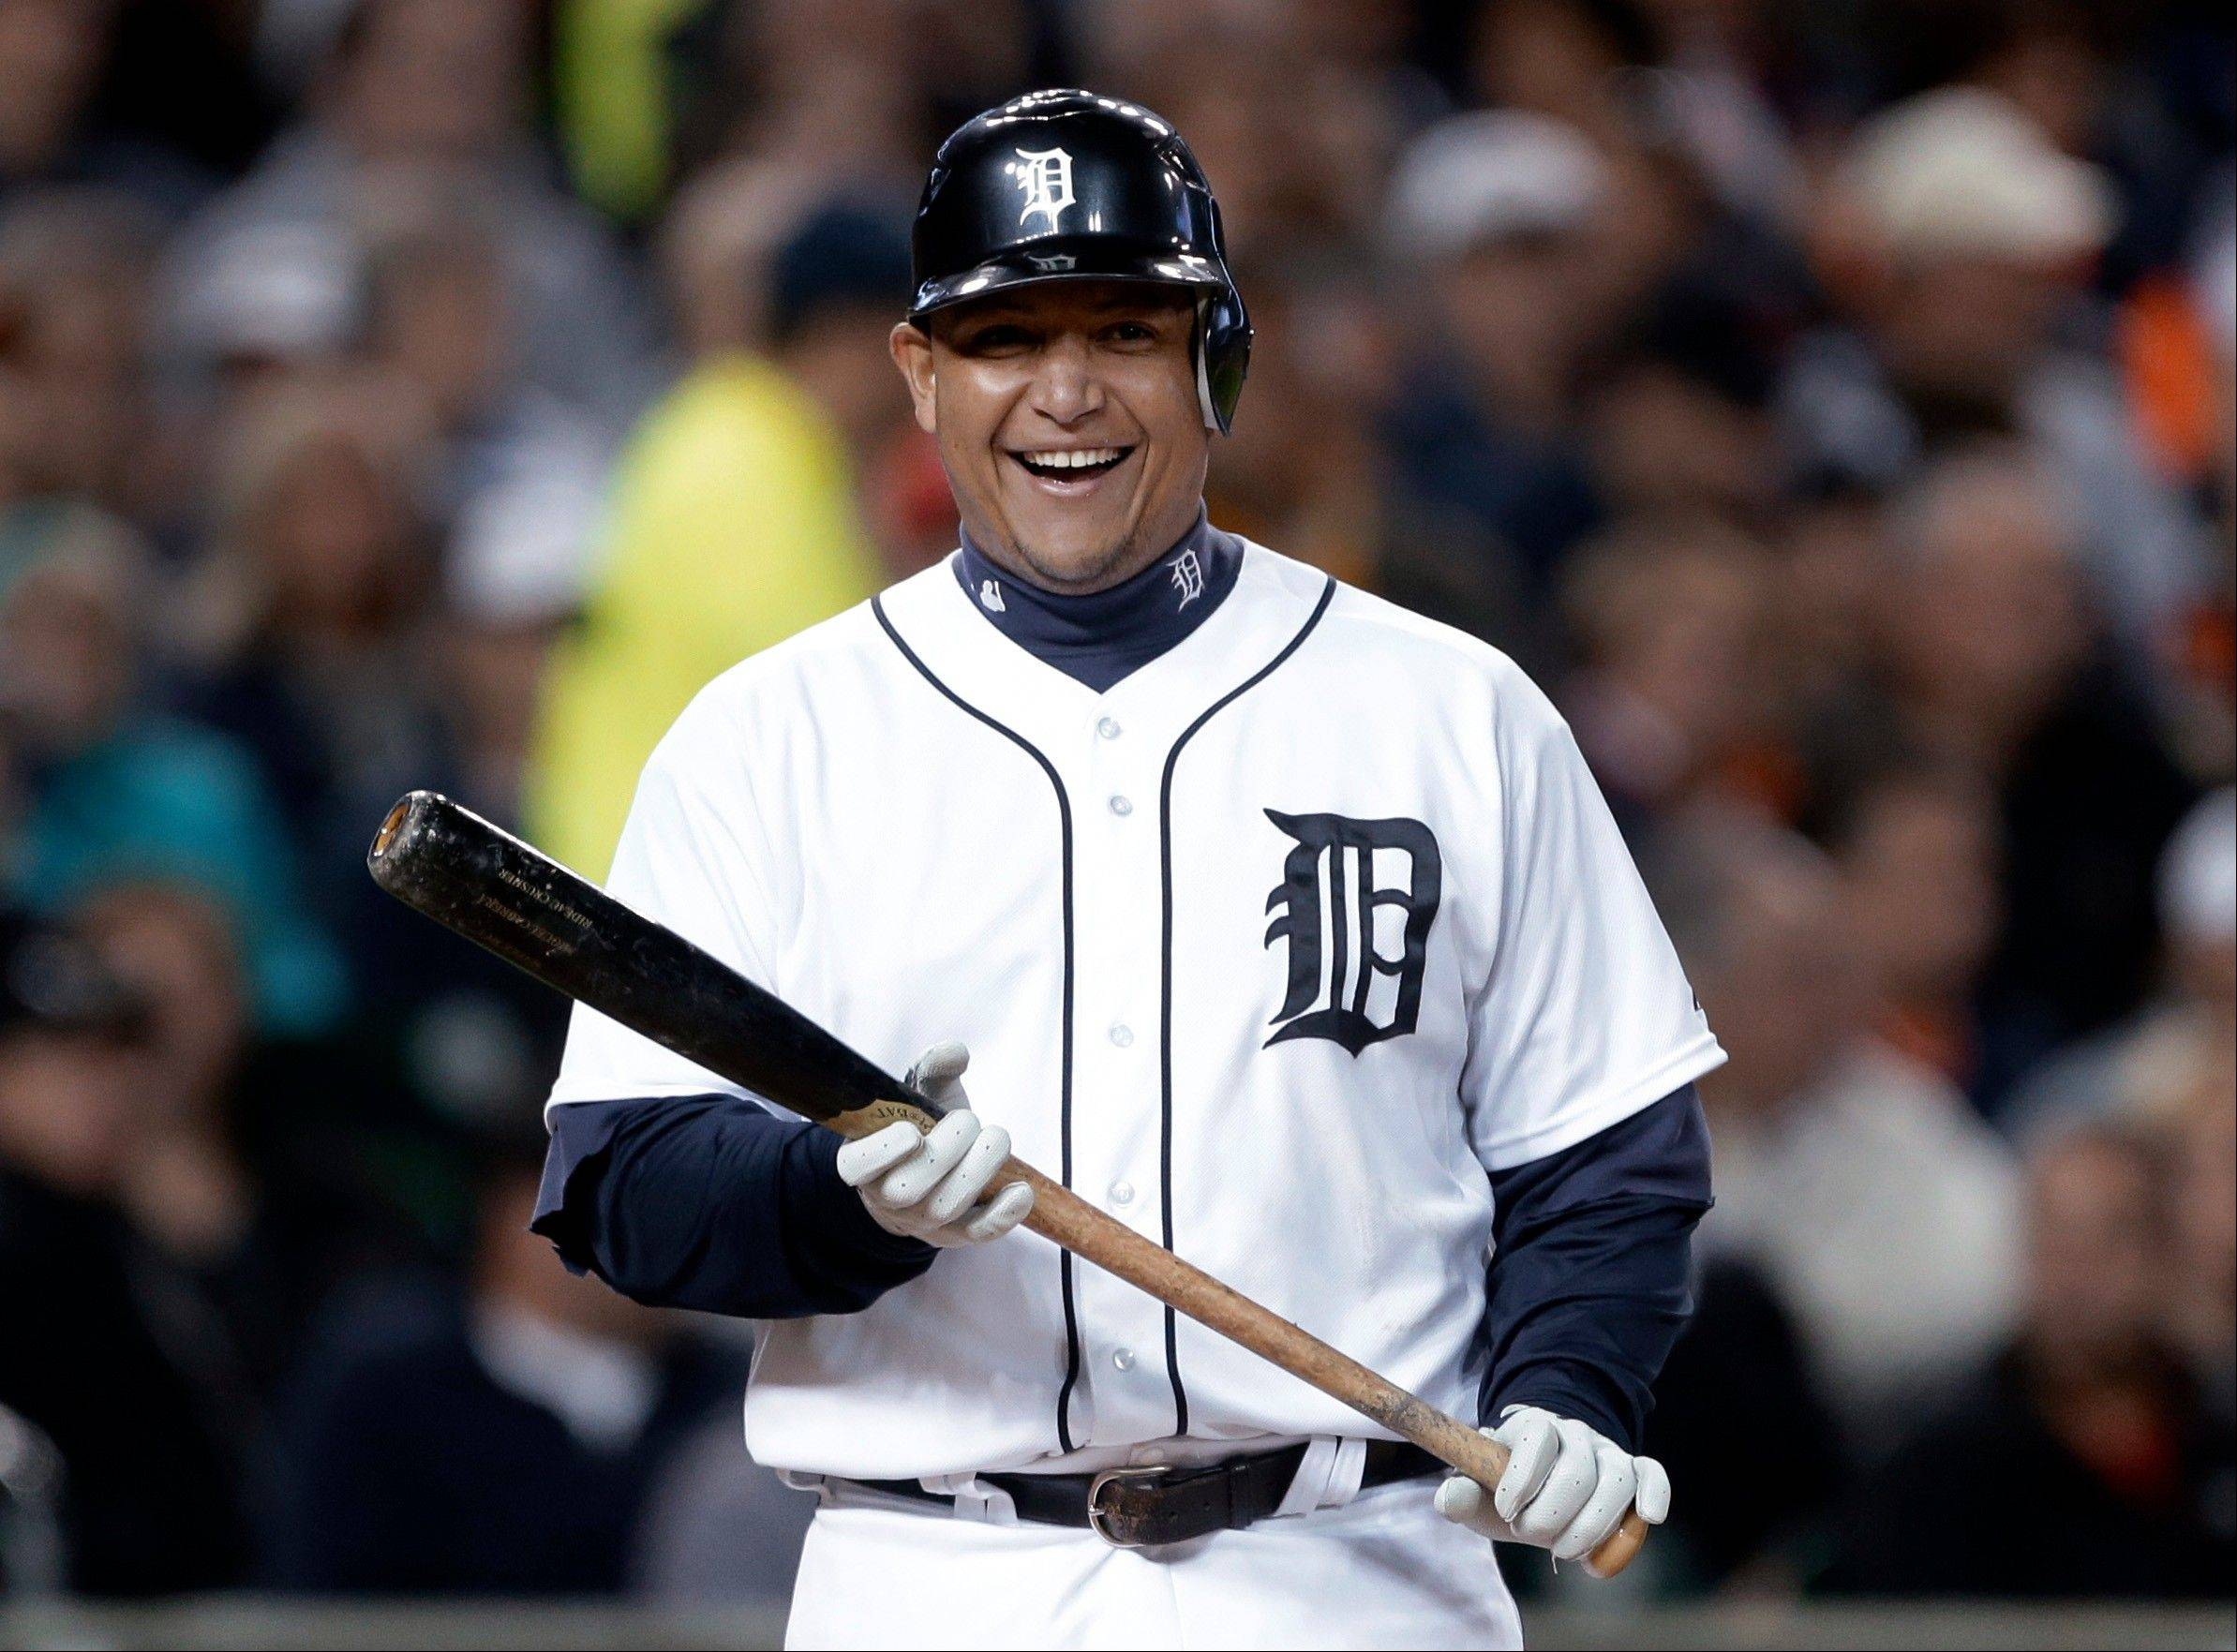 The Detroit Tigers' Miguel Cabrera smiles Wednesday while being intentionally walked by the Oakland Athletics during the third inning.